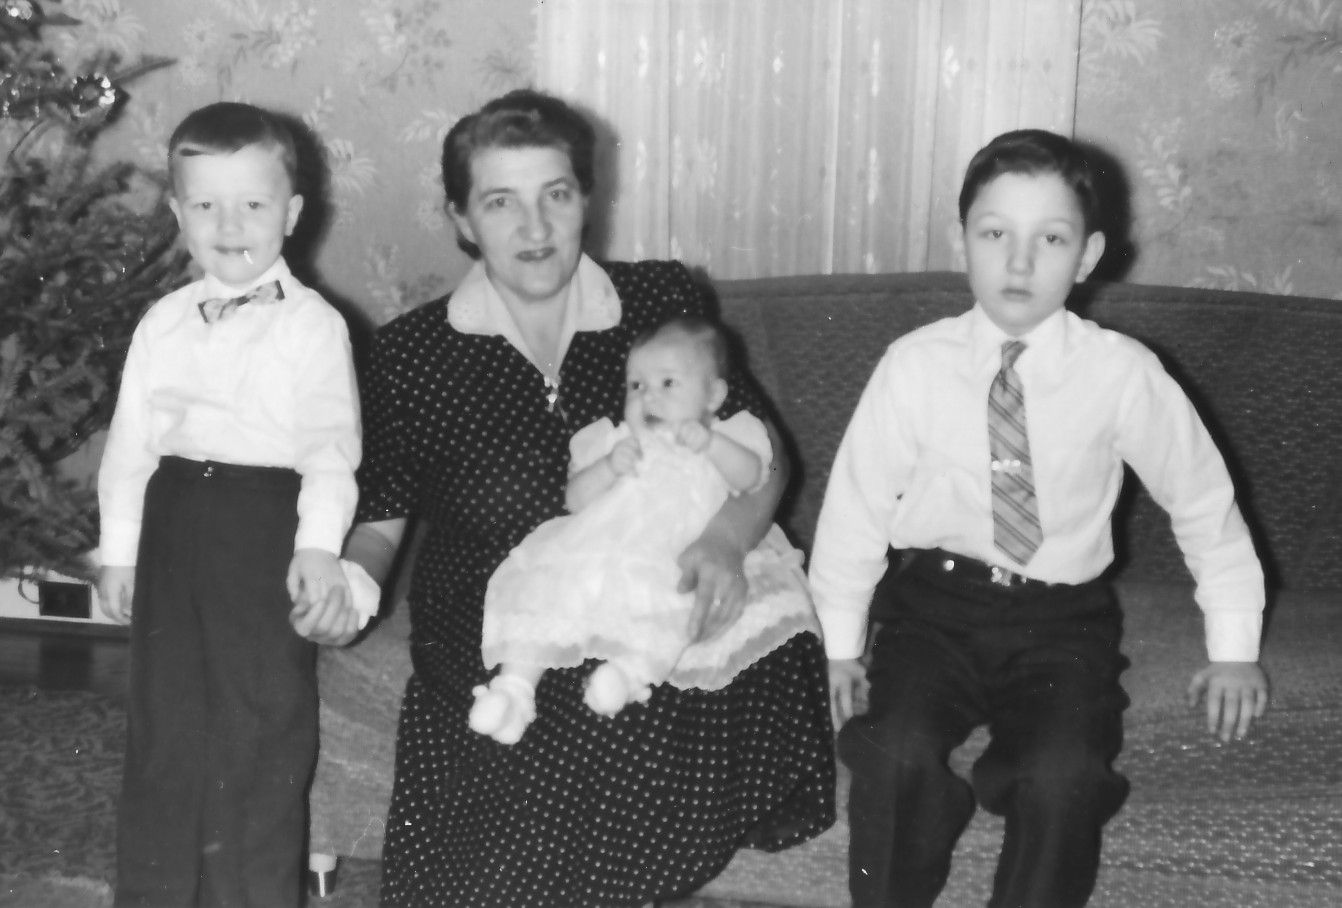 Helen with her three children: Stanley, Ann, and Frank